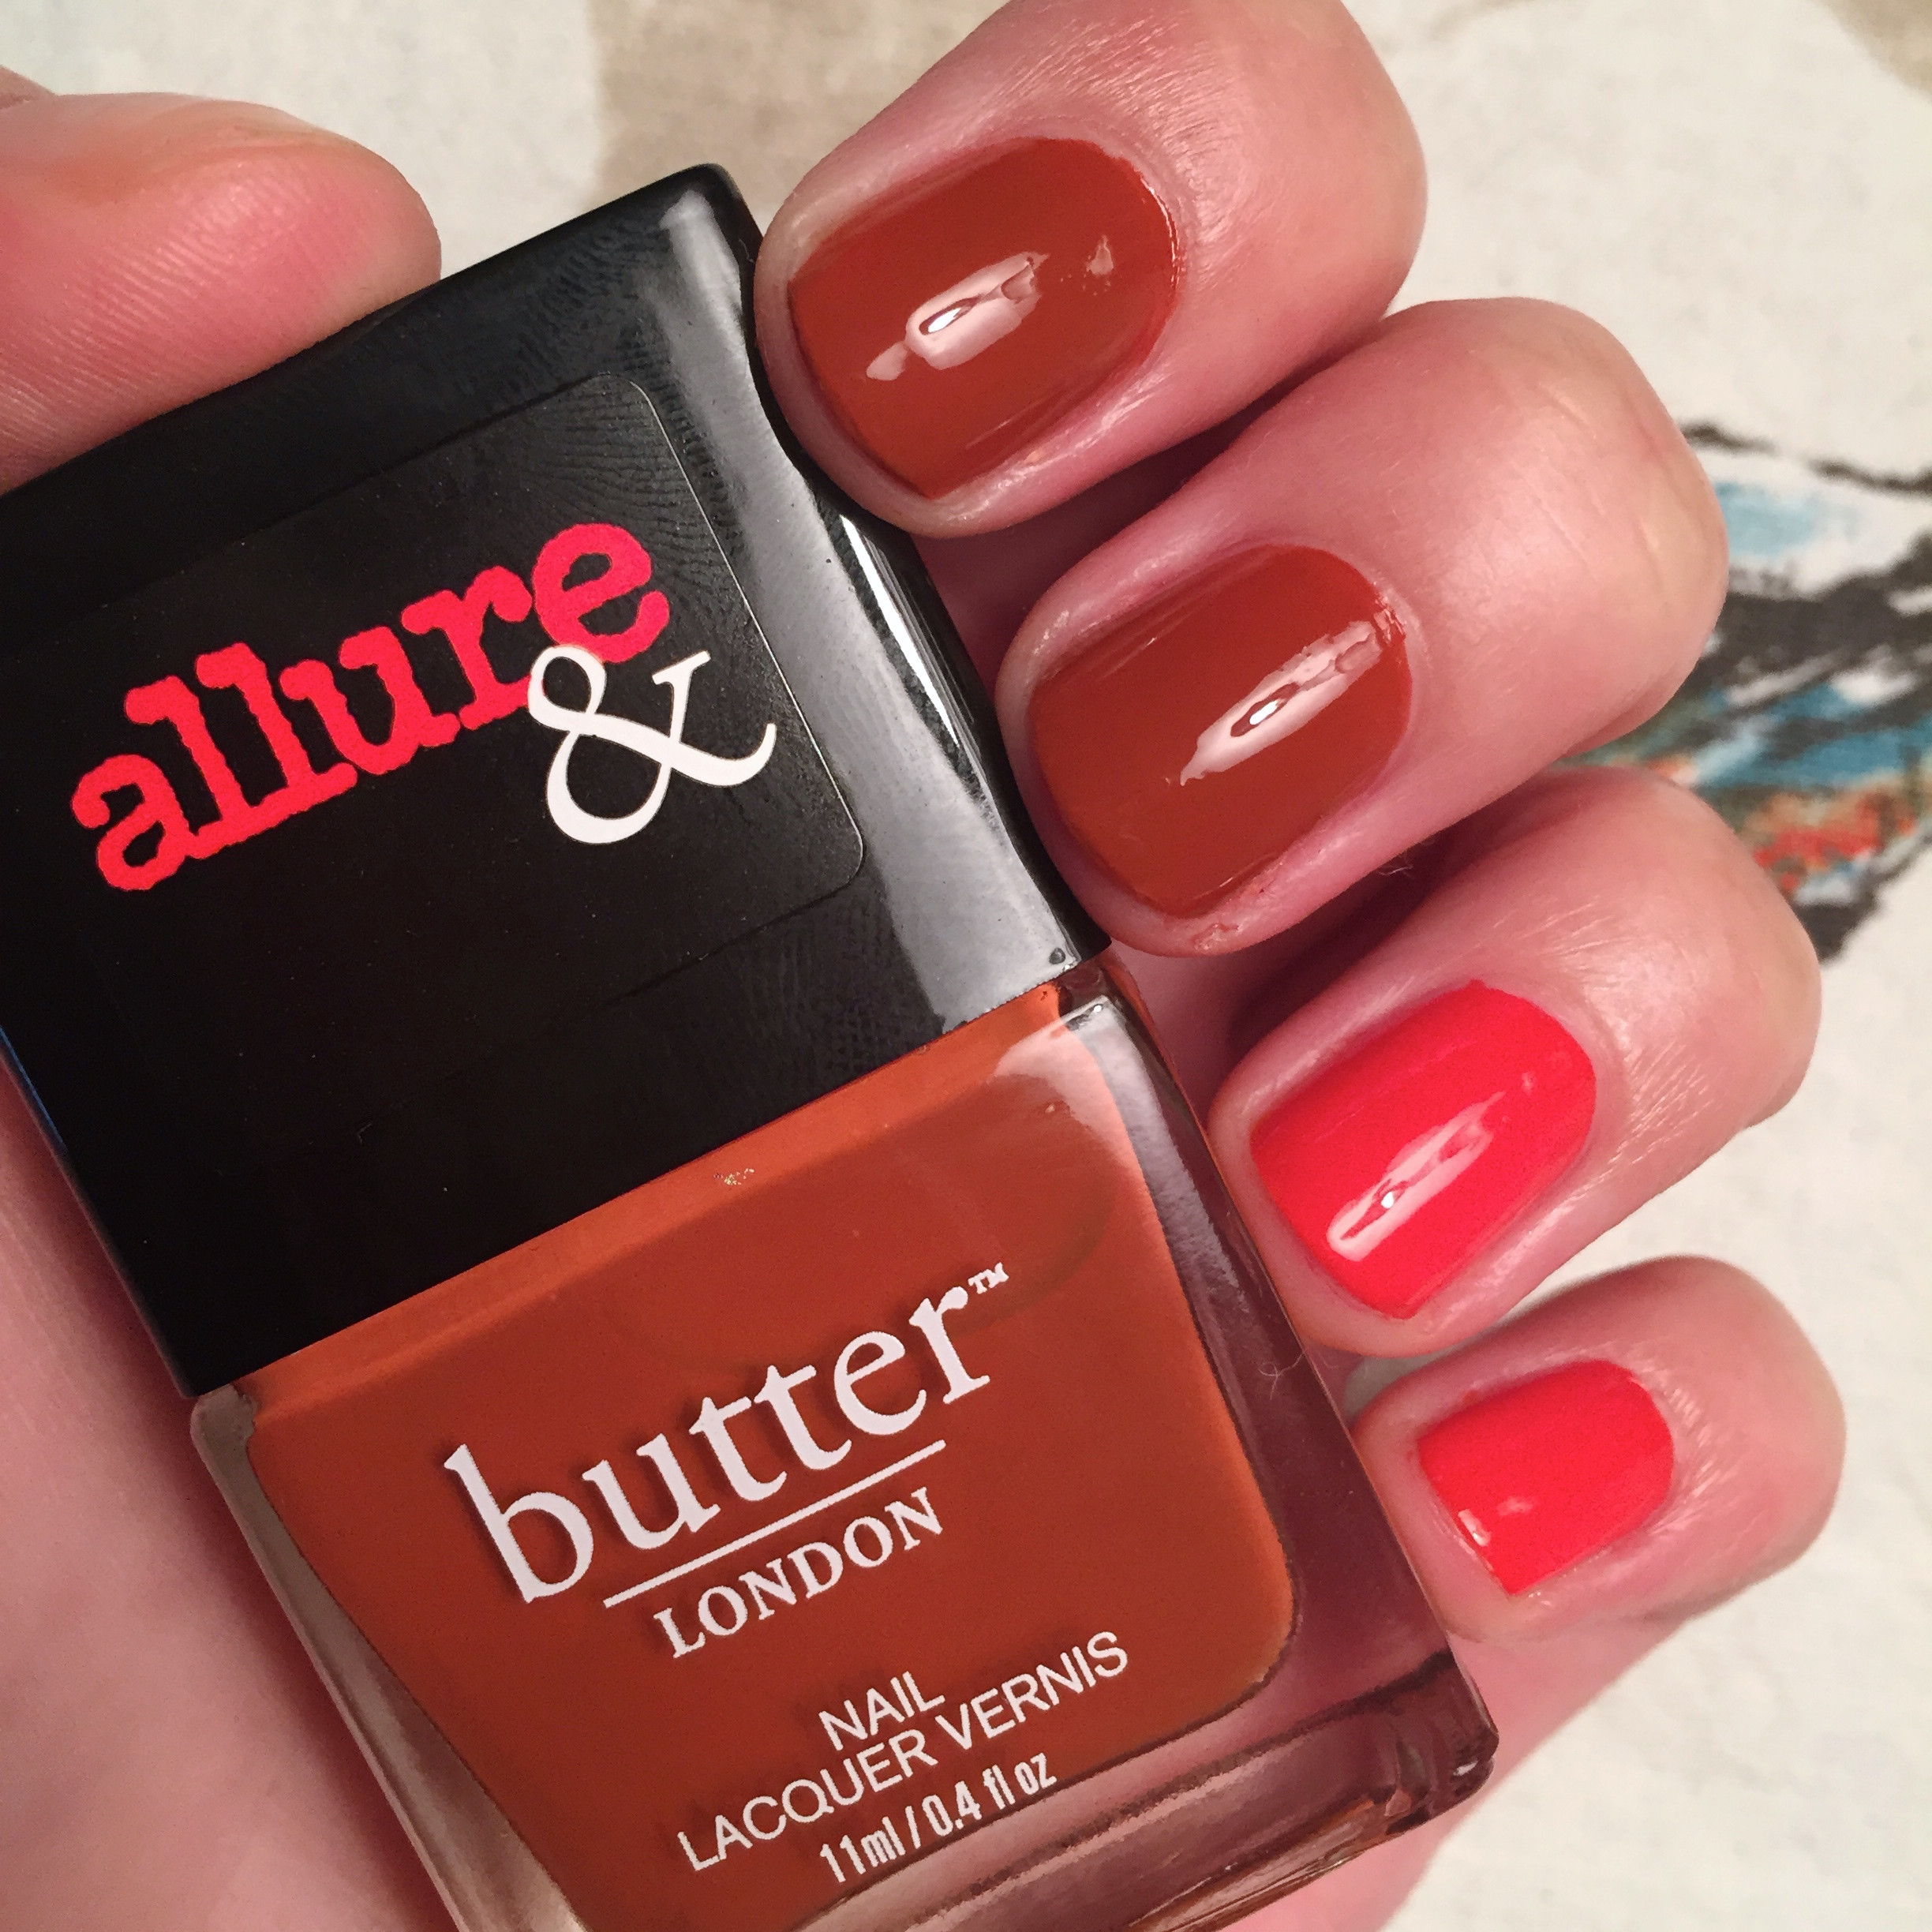 Butter London & Allure Arm Candy Nail Polish